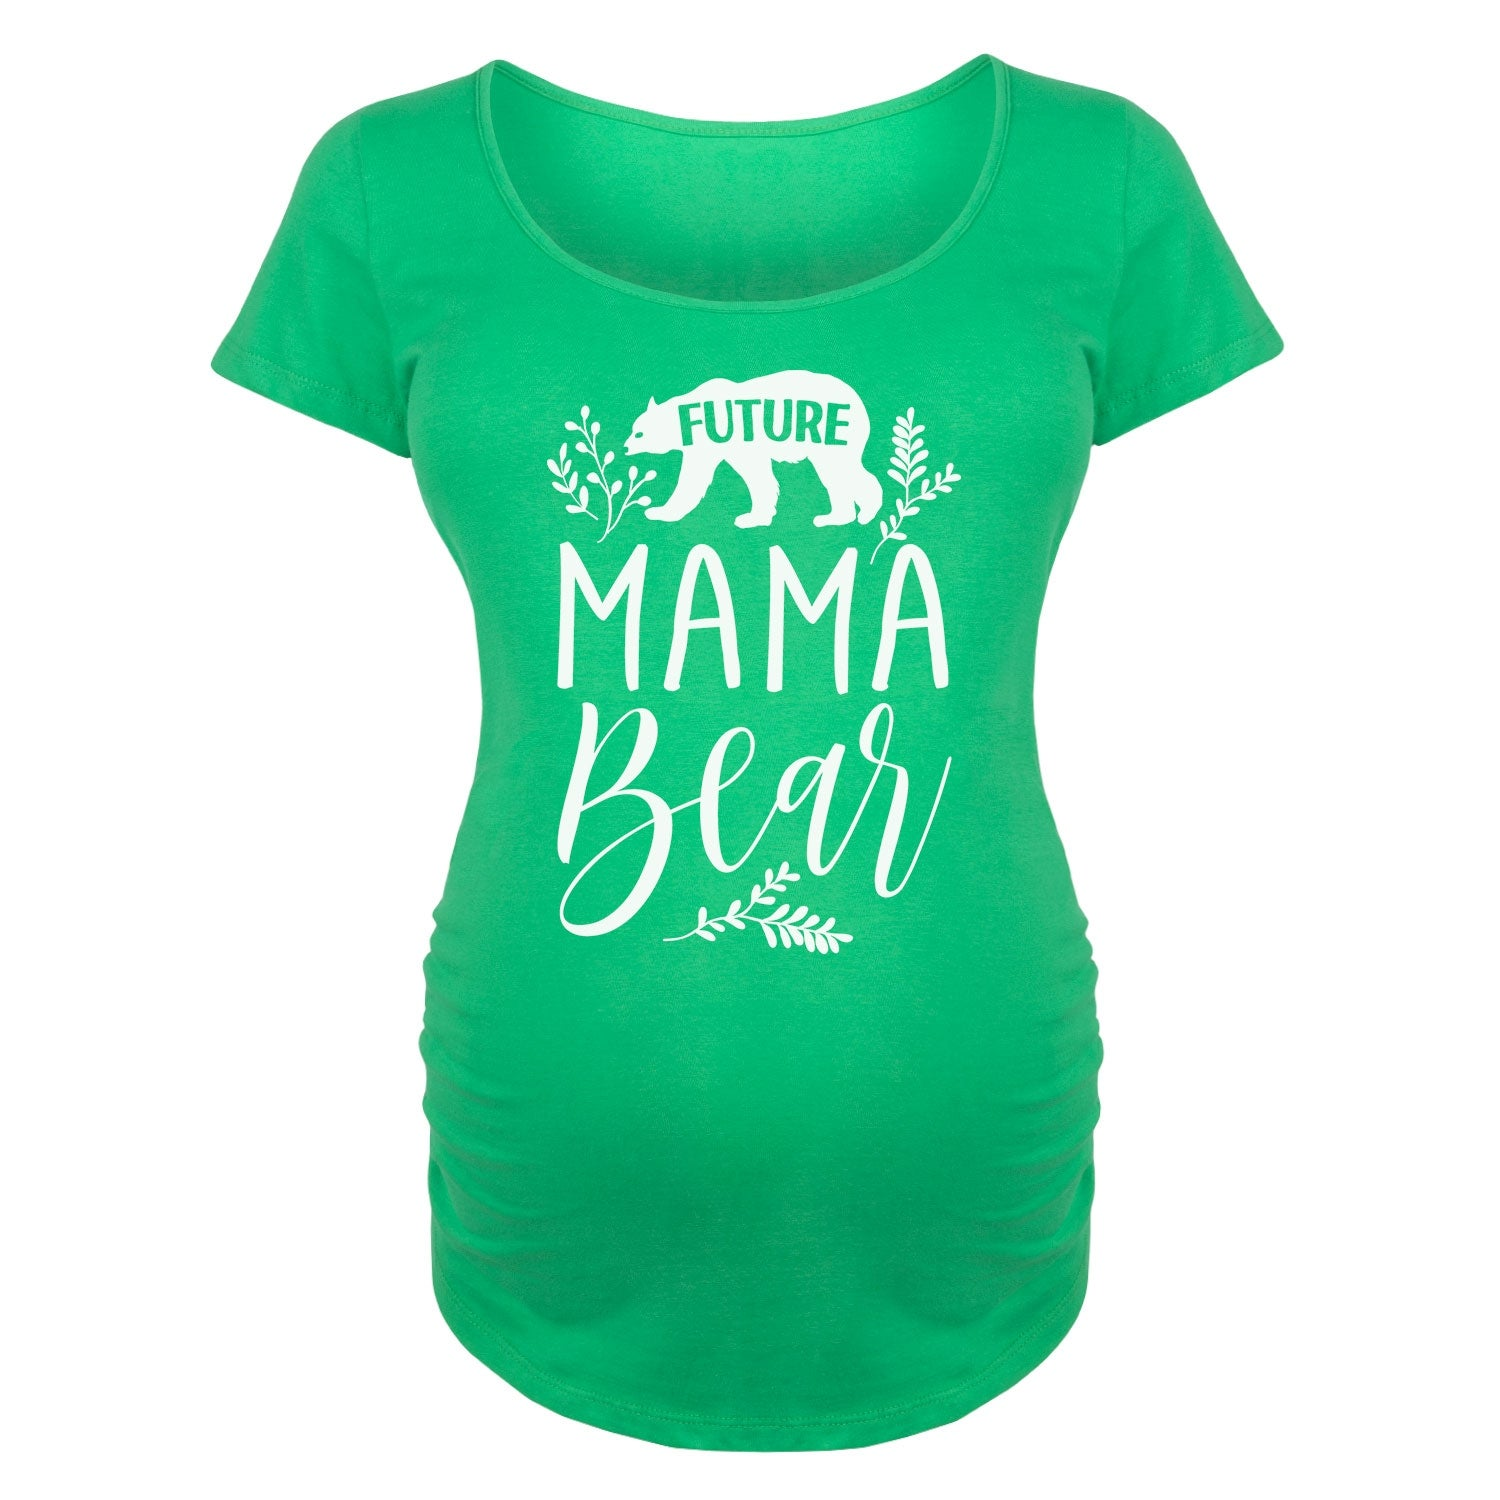 03cdae2283e08 Shop Future Mama Bear - Maternity Scoop Neck Tee - Free Shipping On Orders  Over $45 - Overstock - 20399959